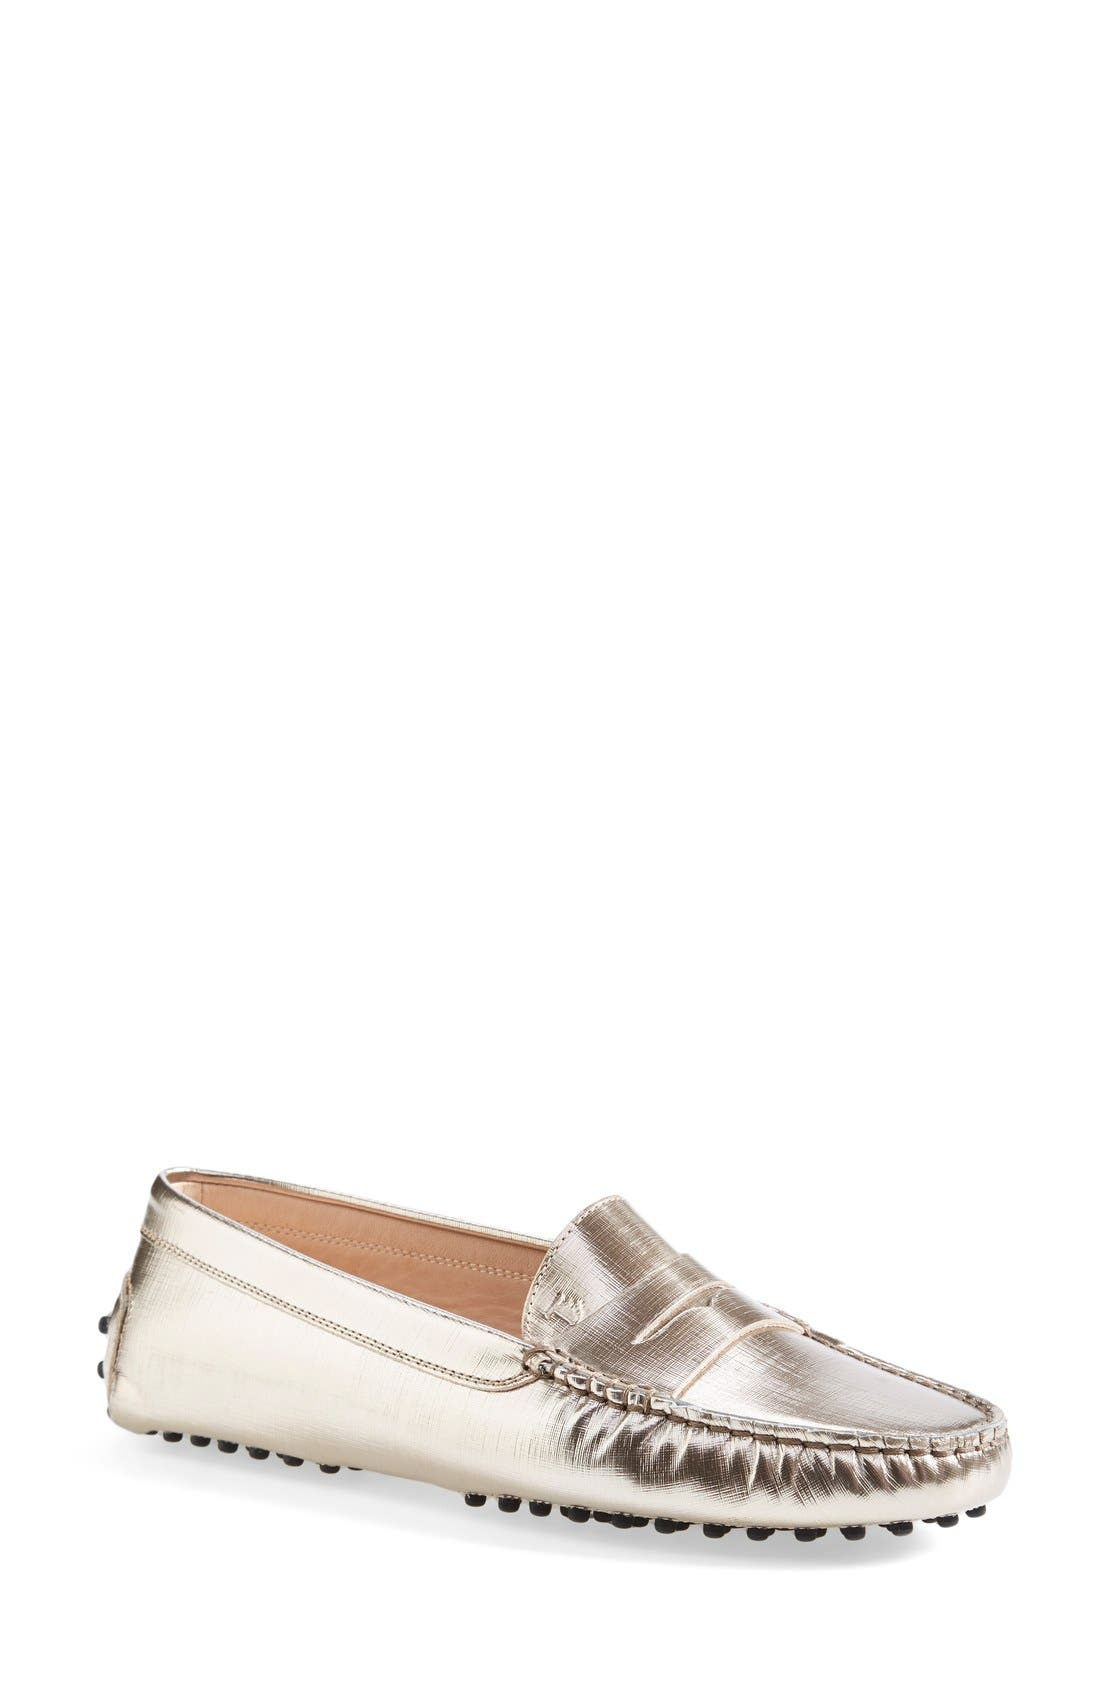 Main Image - Tod's 'Gommini' Metallic Leather Penny Loafer